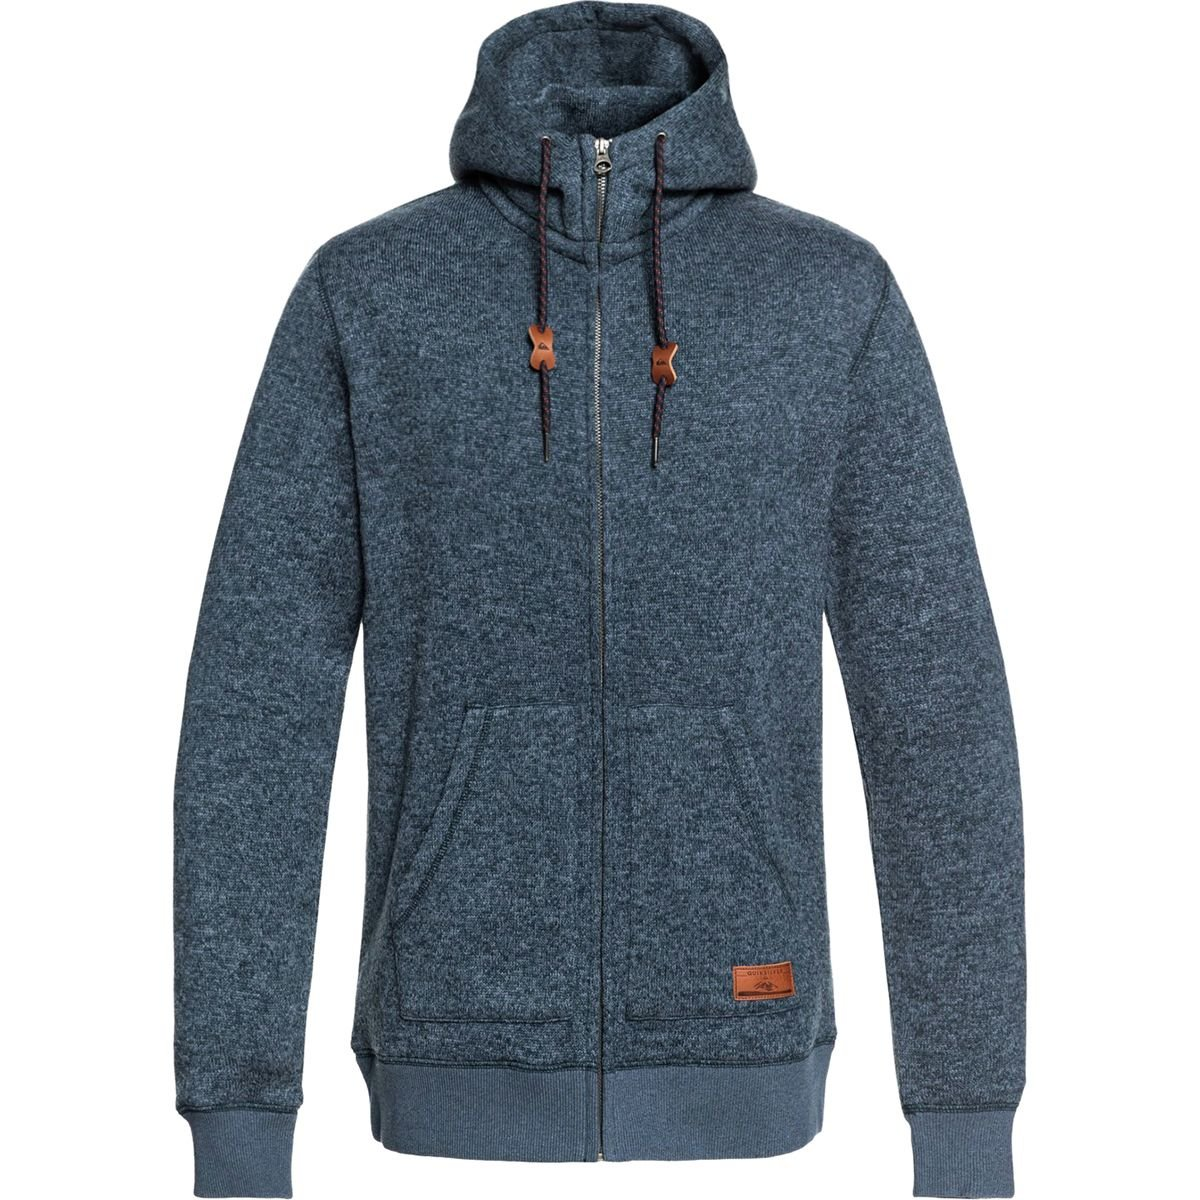 Quiksilver Men's Keller Zip Up Hoodie Jacket EQYFT03835